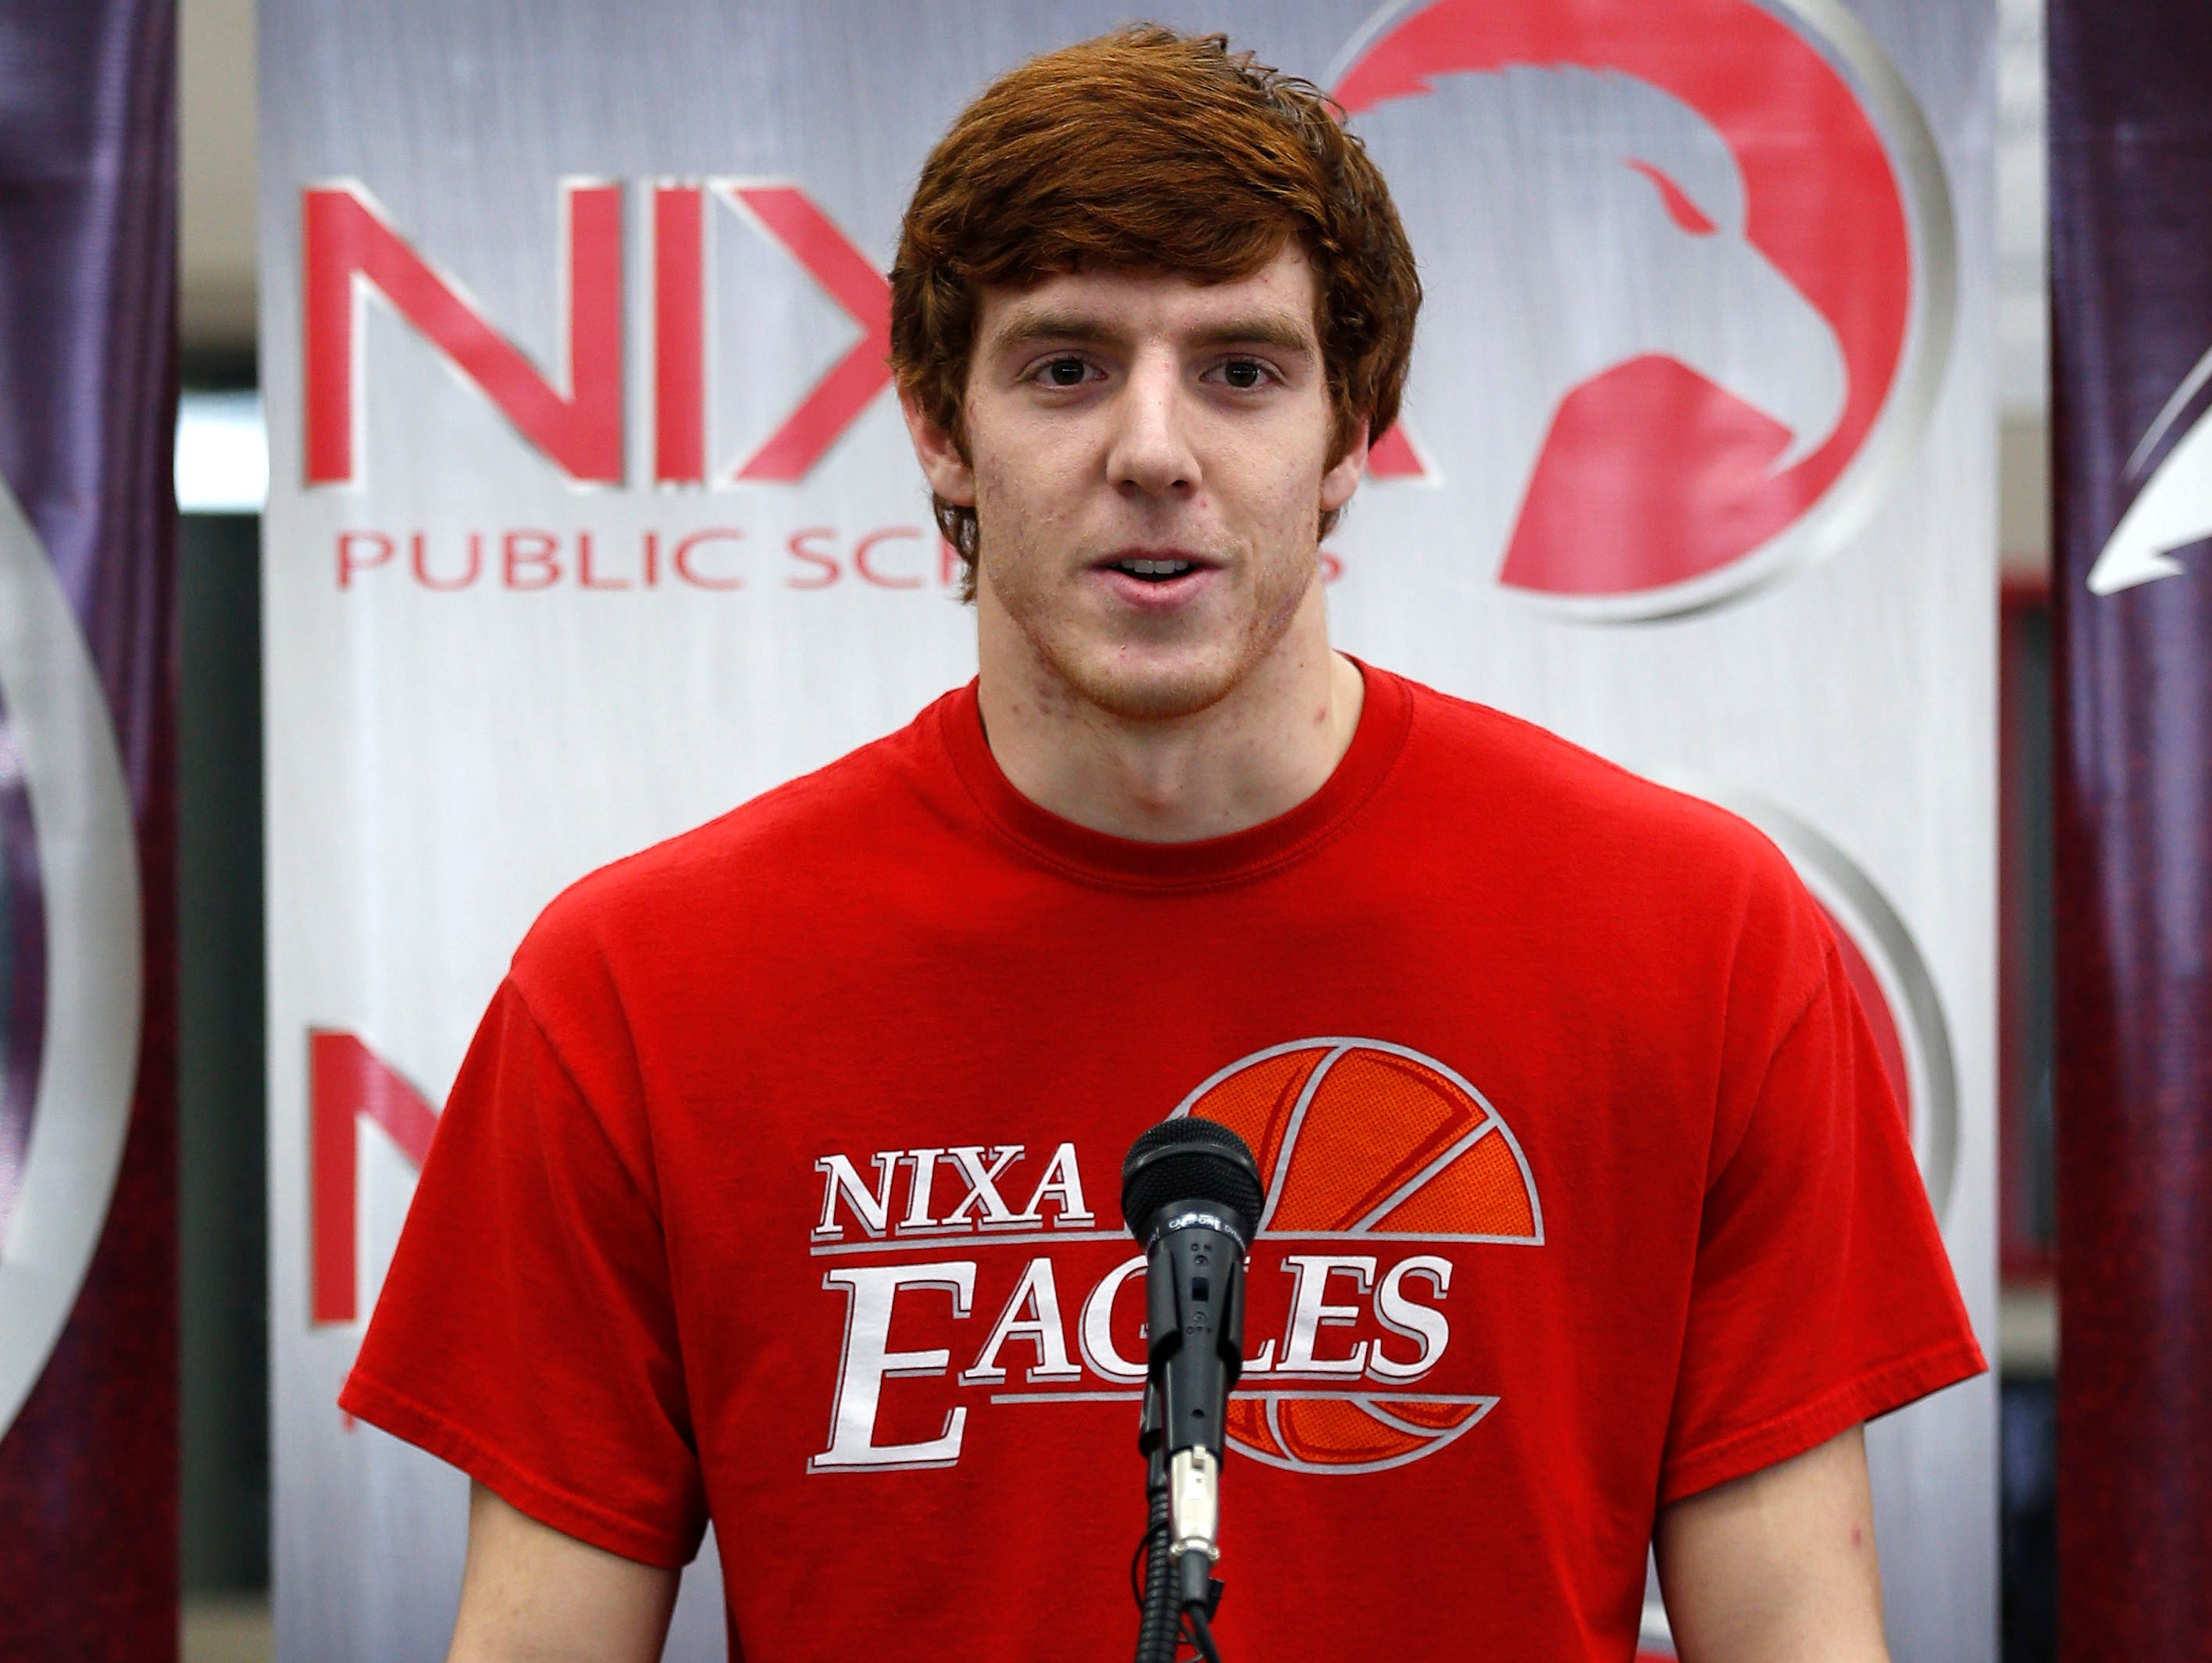 Nixa High School senior Chase Allen announces his decision to play football at Iowa State during a press conference on Friday, Jan. 29, 2016. Allen chose Iowa State over Michigan, Nebraska and 16 other NCAA Division I teams.